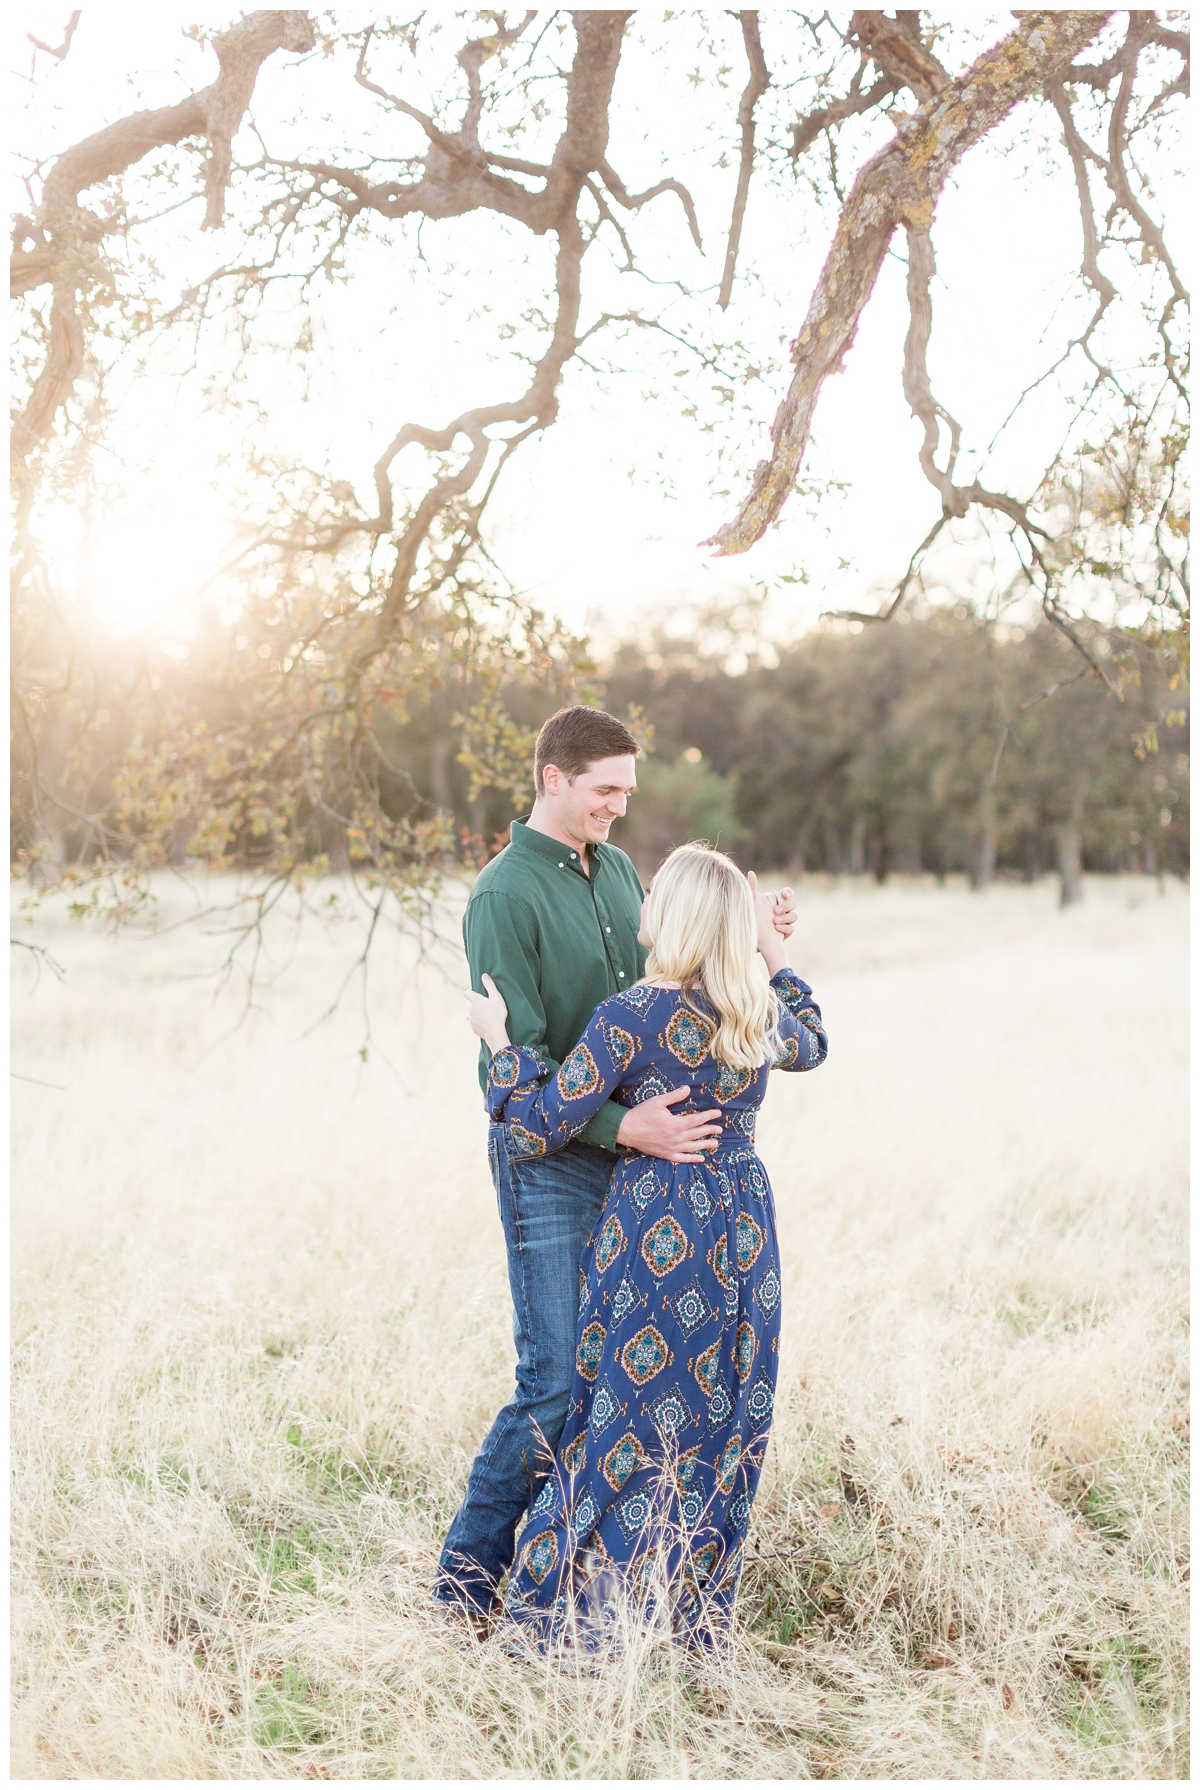 Bidwell Park engagement photography session taken during golden hour right before sunset